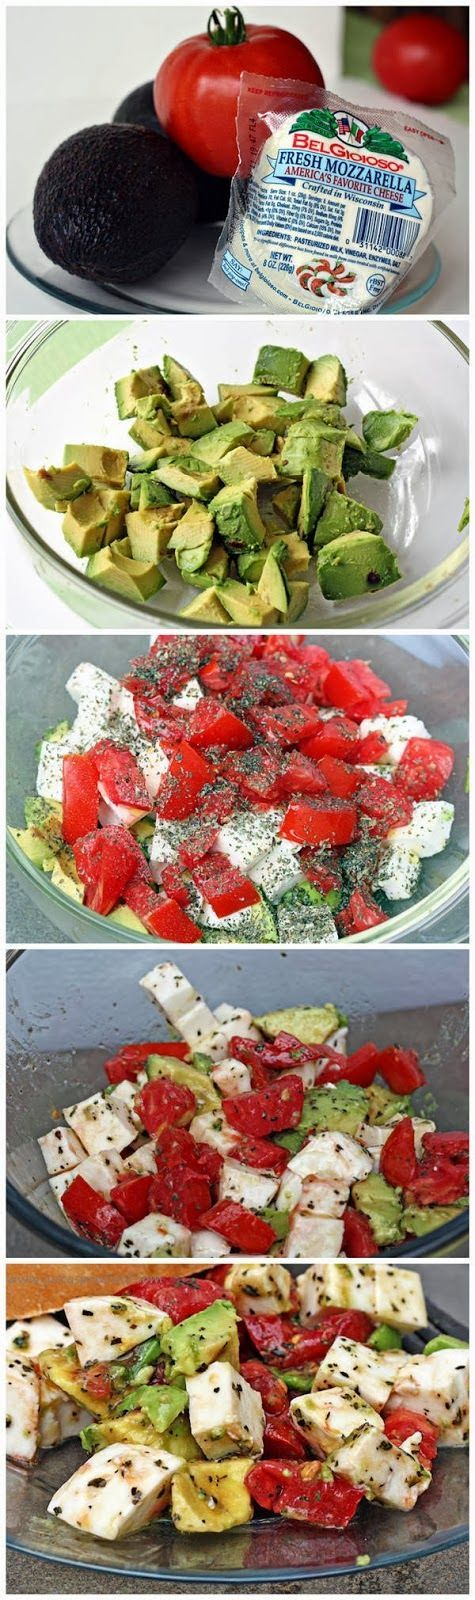 How To Mozzarella Salad Avocado / Tomato/.